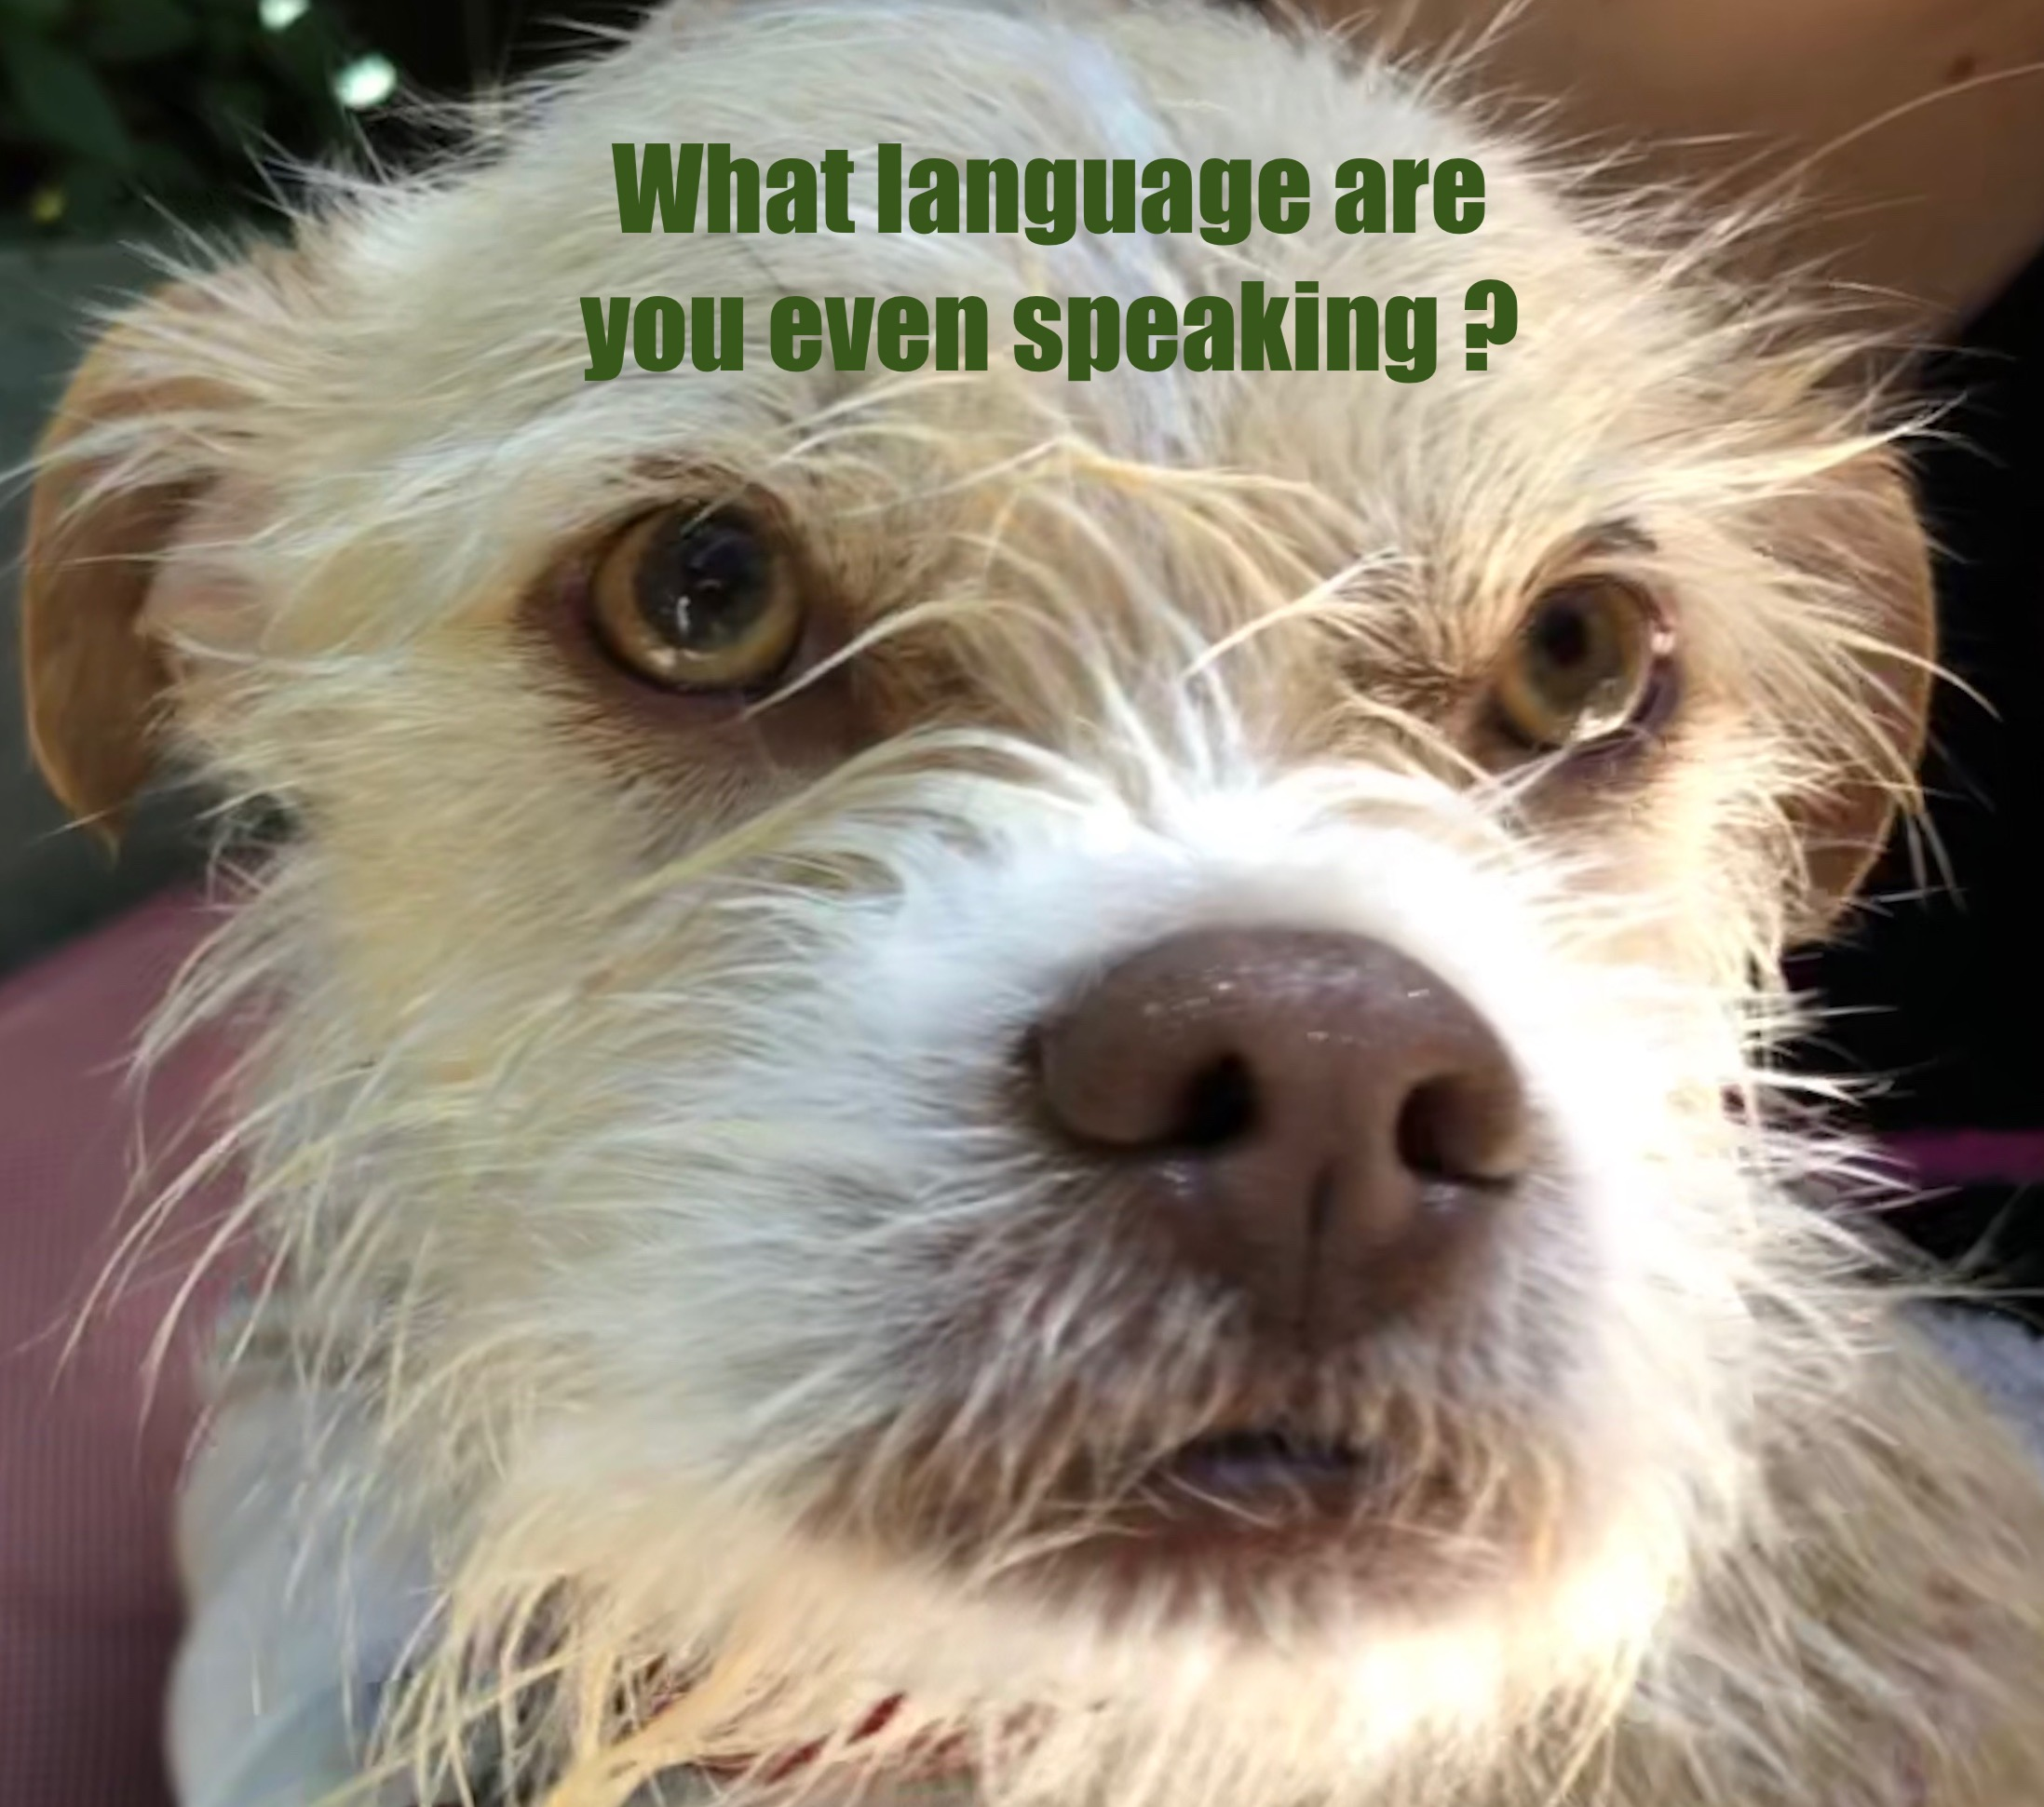 Confused looking dog with the caption 'What language are you even speaking?'